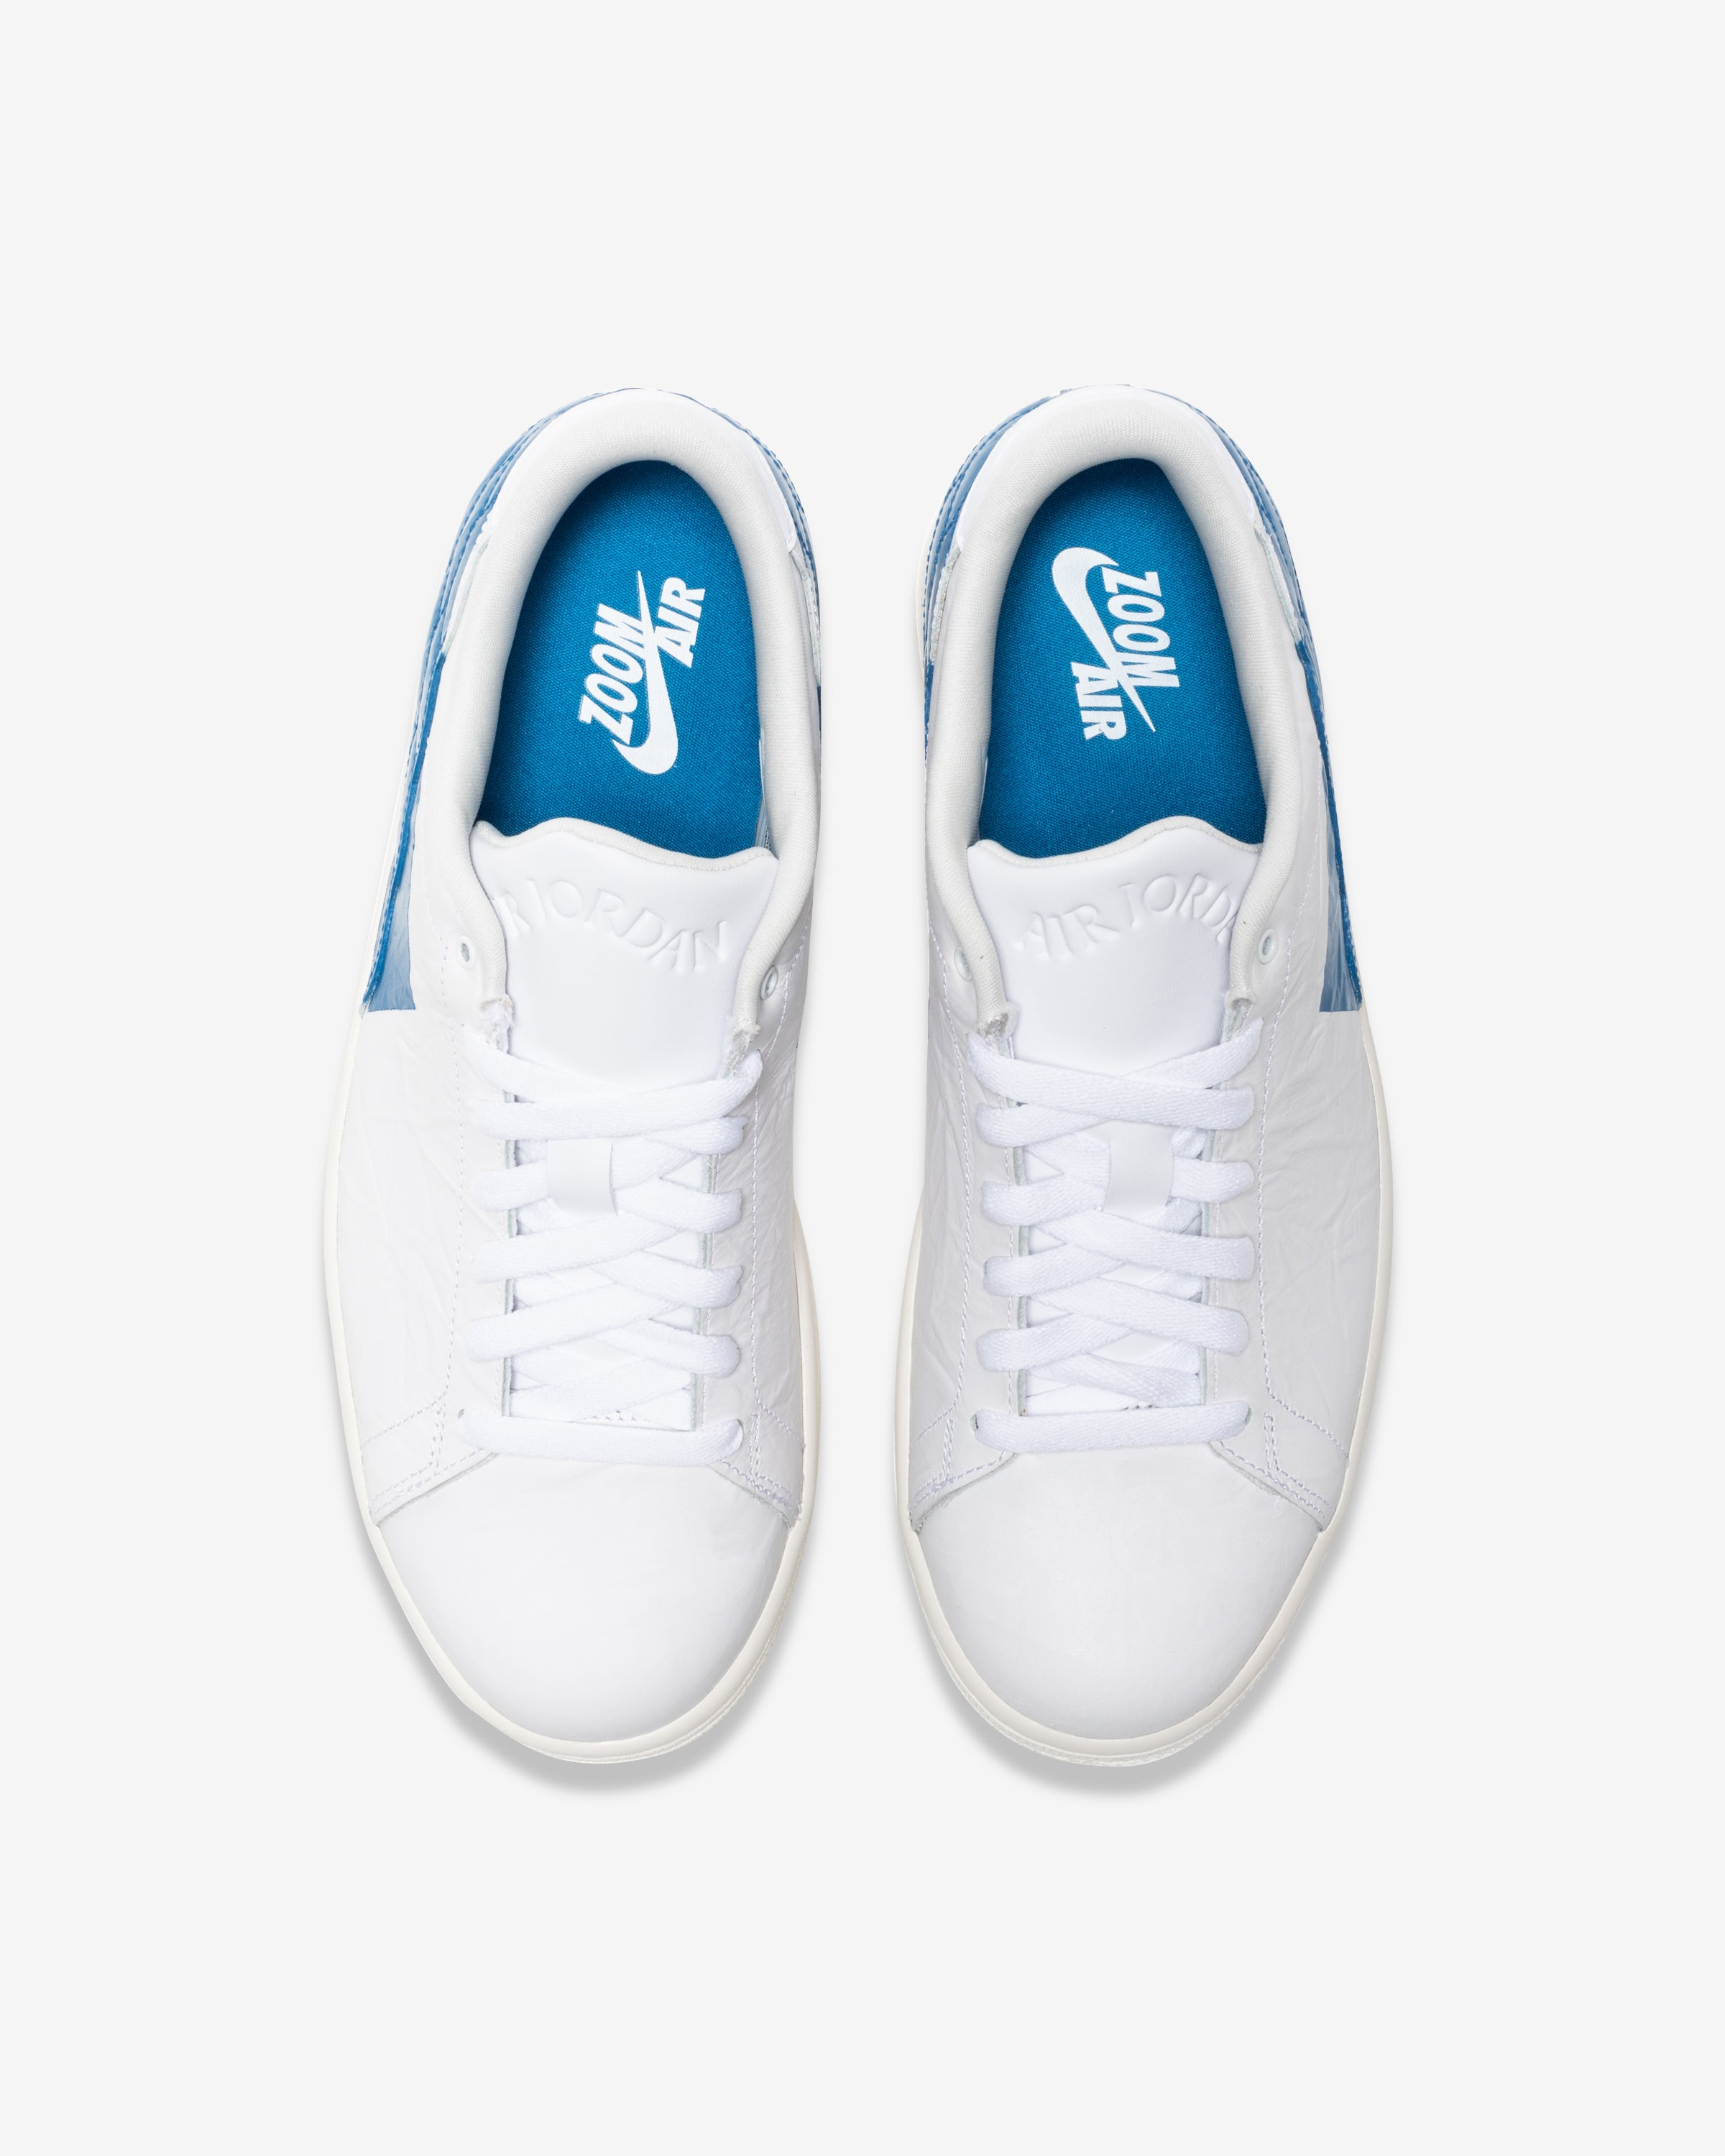 AJ 1 CENTRE COURT - WHITE/ MILITARYBLUE/ SAIL